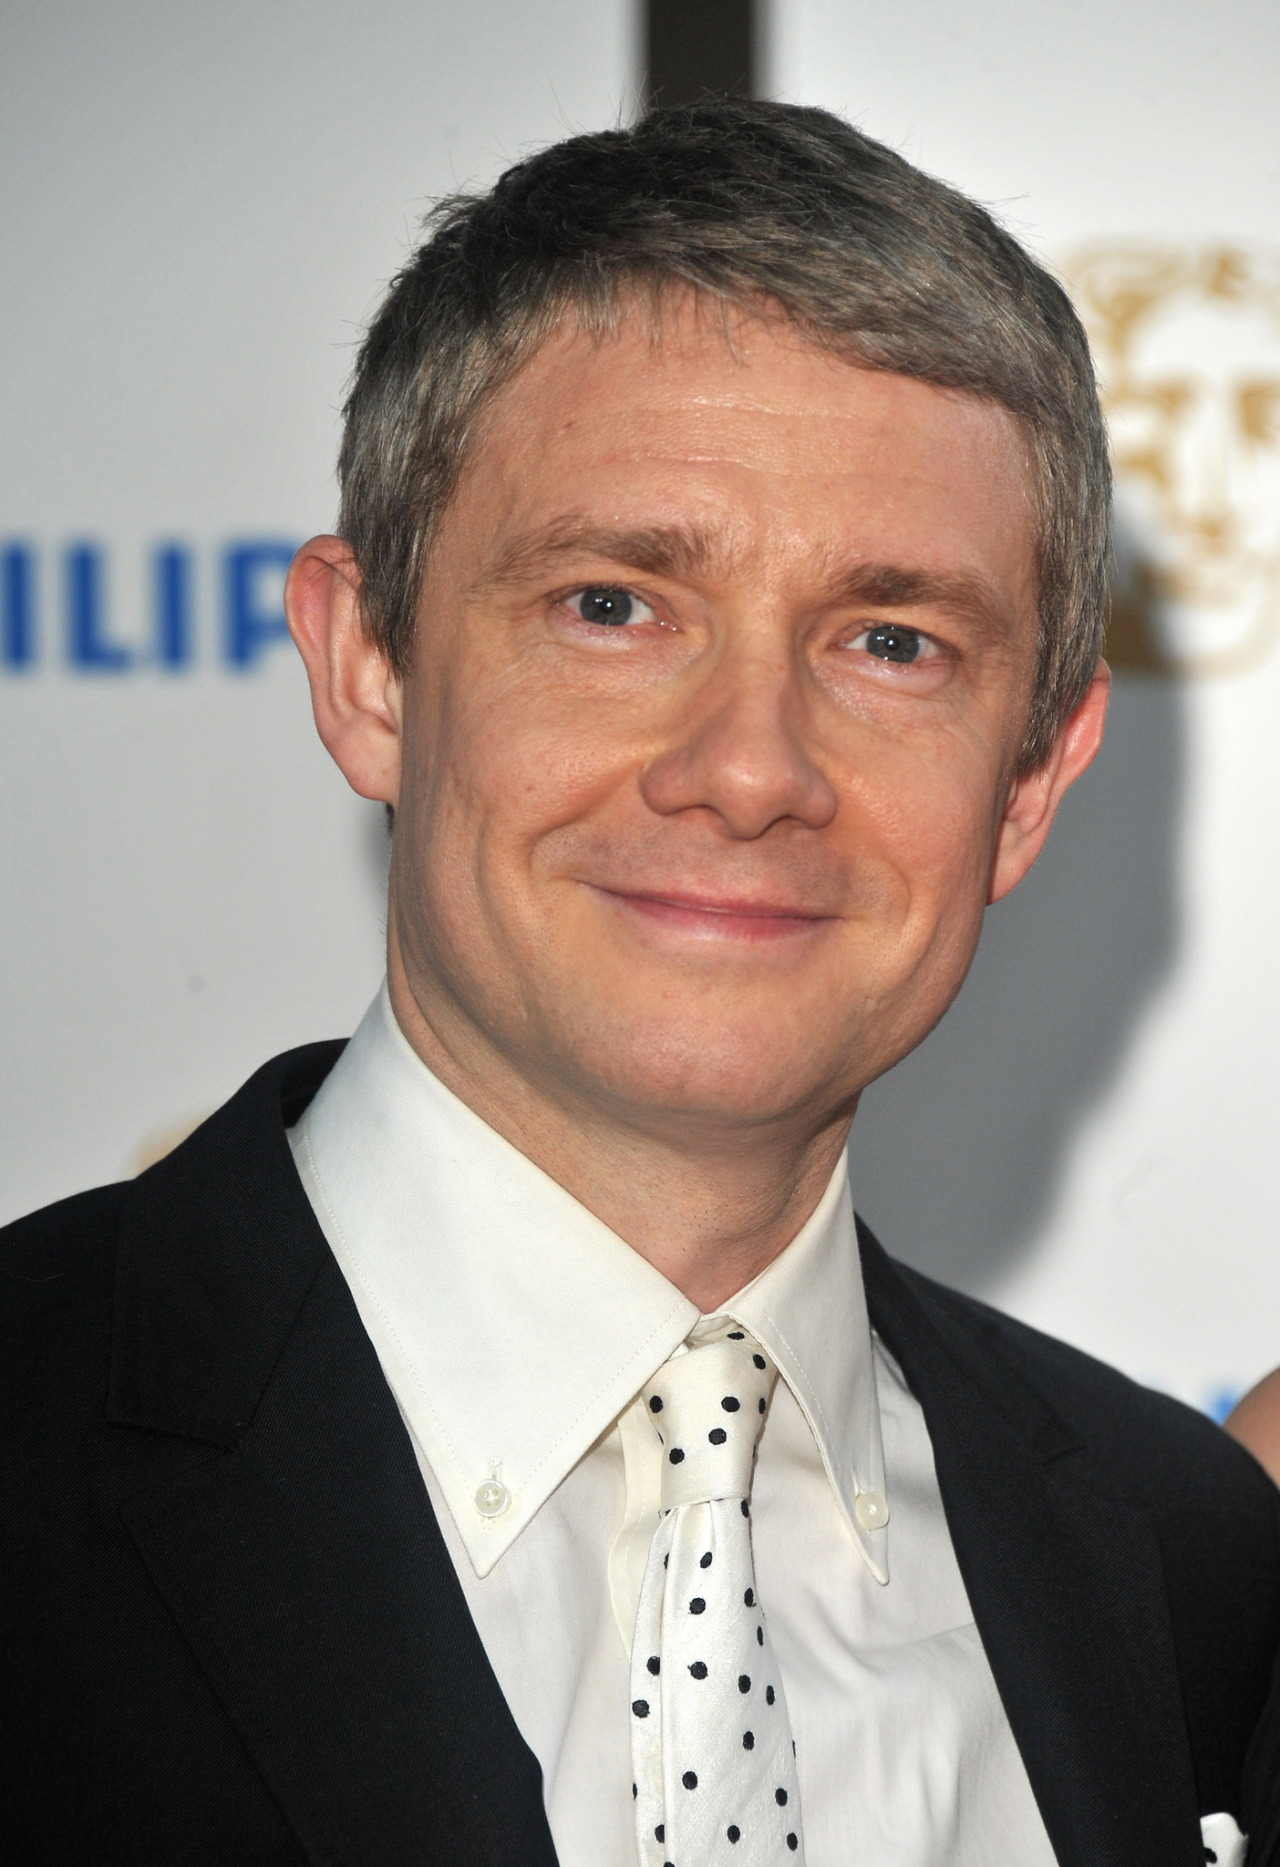 ti5o5o followed Martin Freeman on MovieLaLa